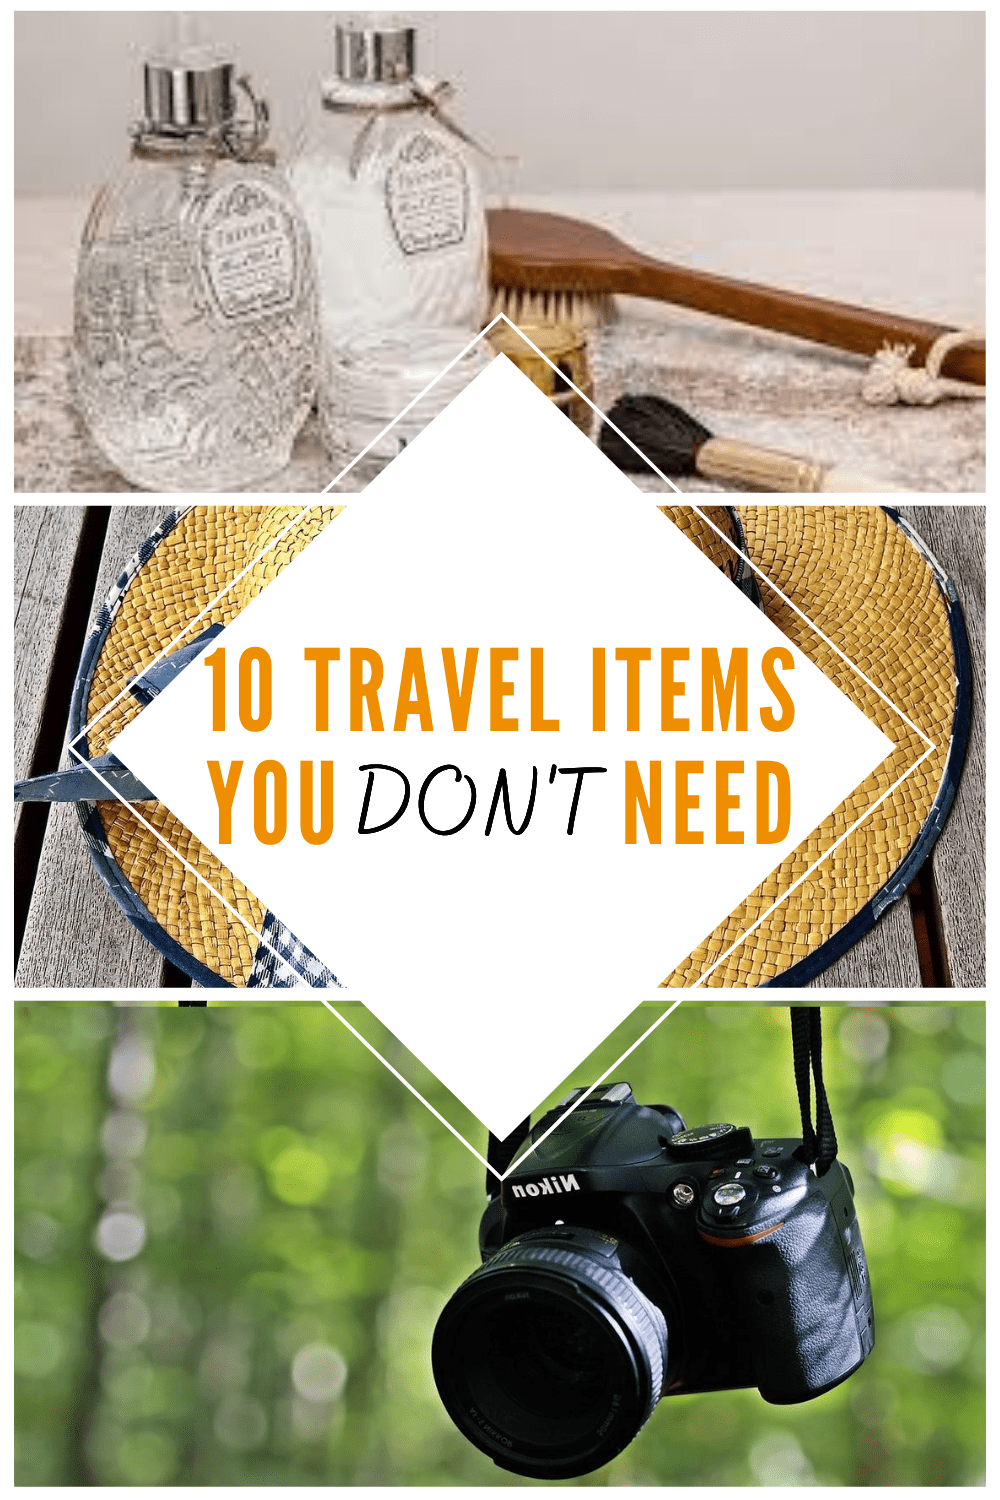 10 Travel Items You Don't Need